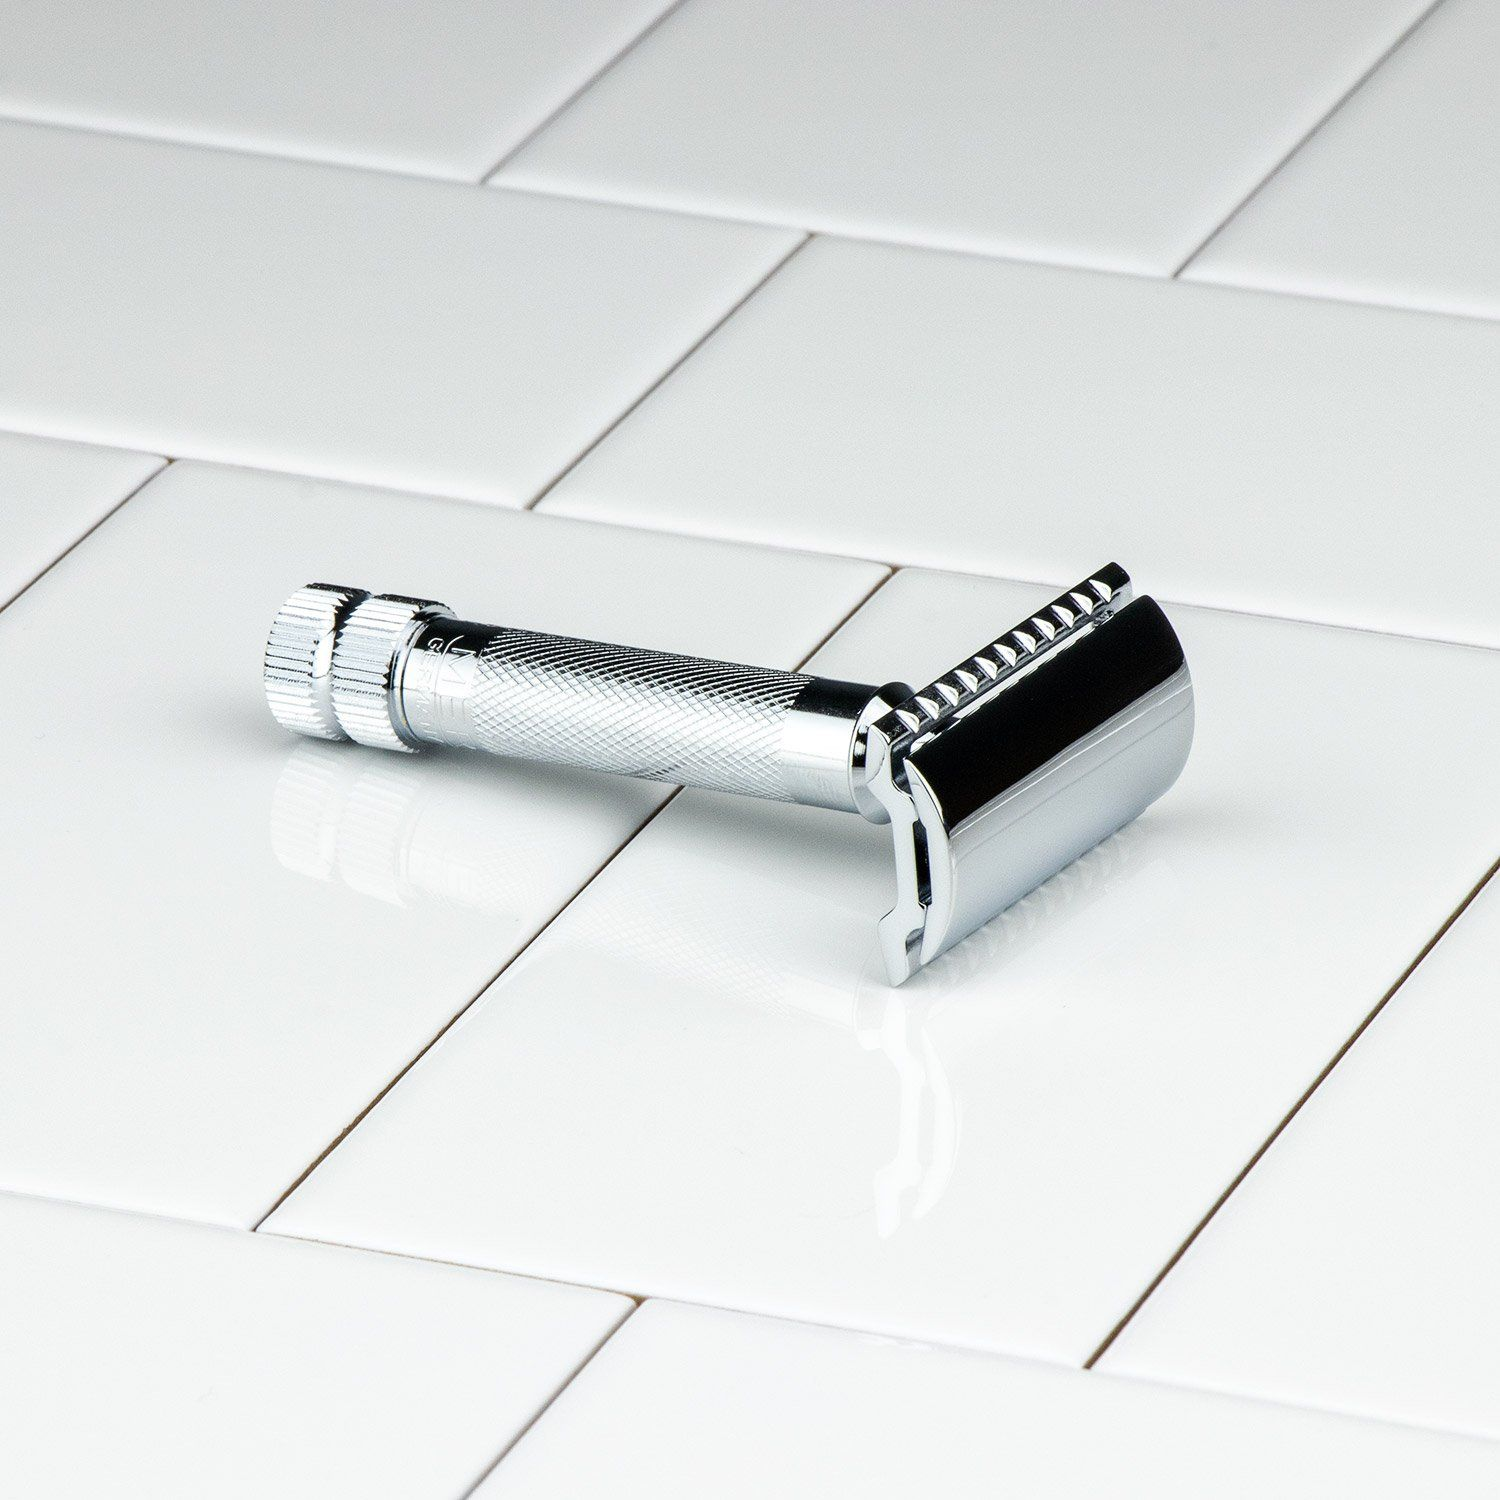 Merkur Double Edge Safety Razor, Straight Cut, Extra Thick Handle, 34C